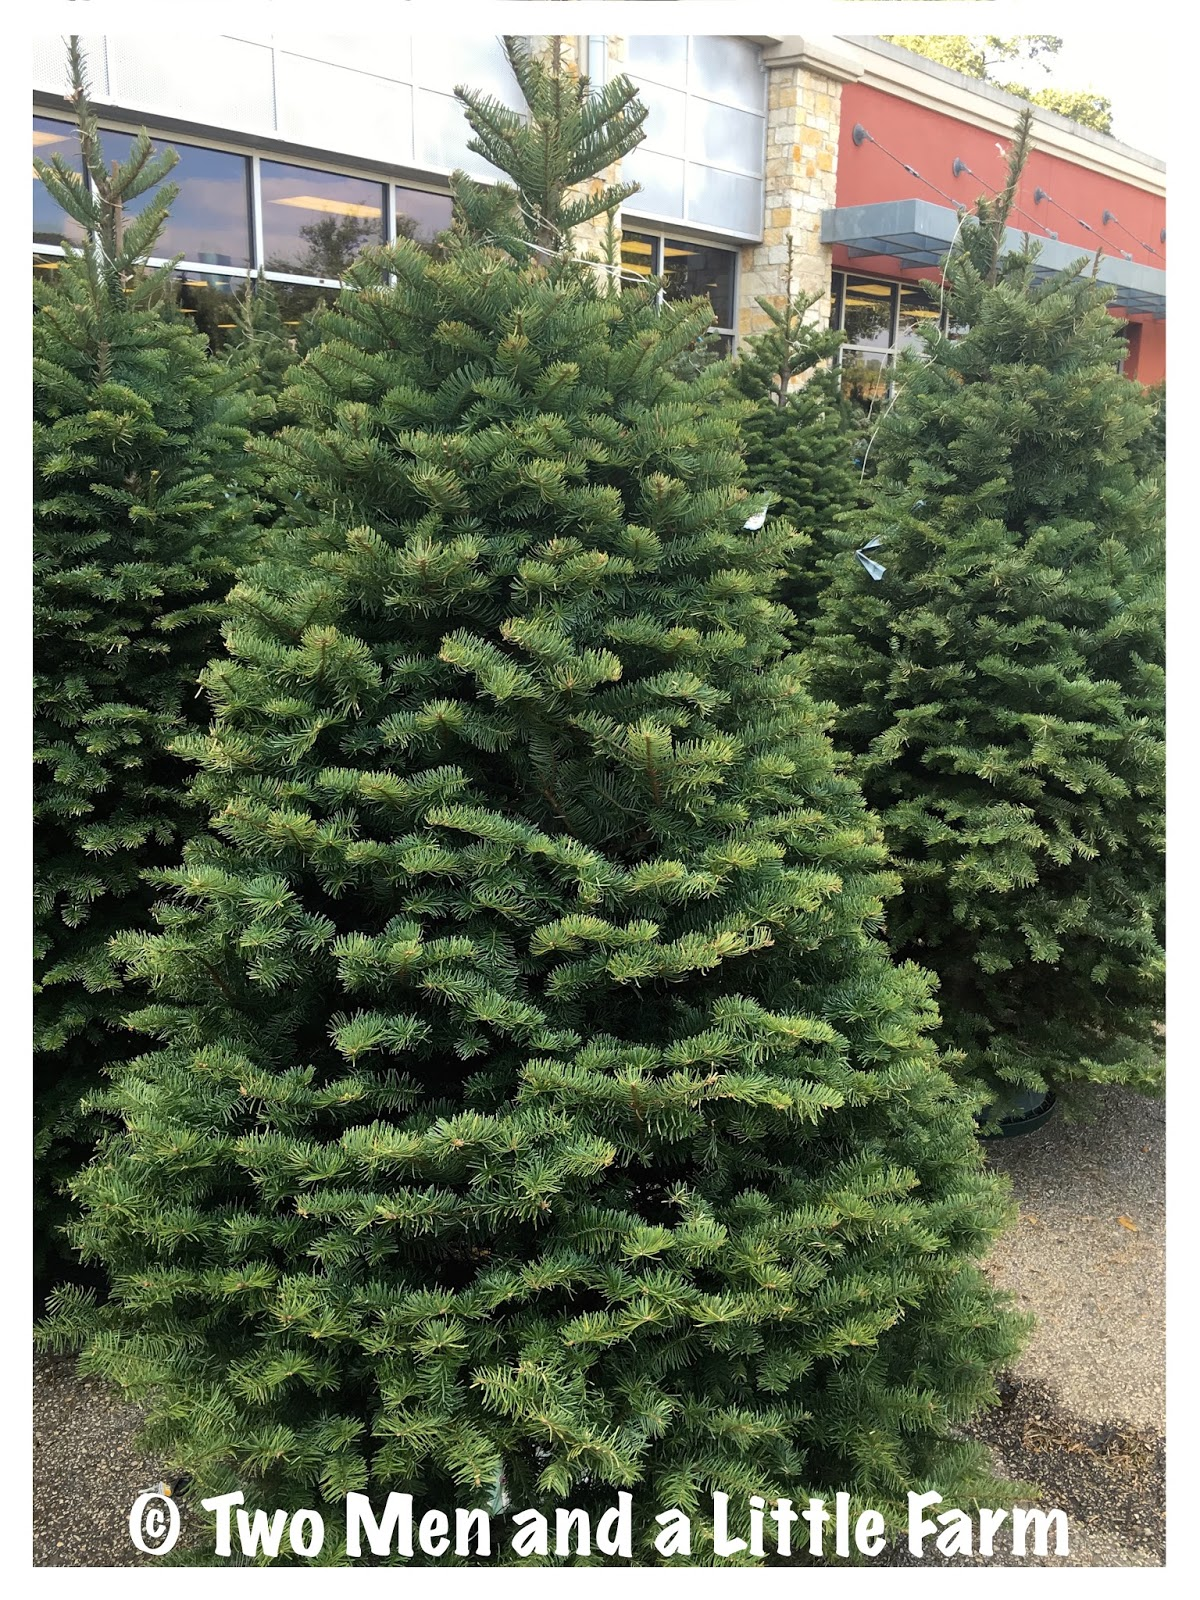 Two Men and a Little Farm: GROWING CHRISTMAS TREES